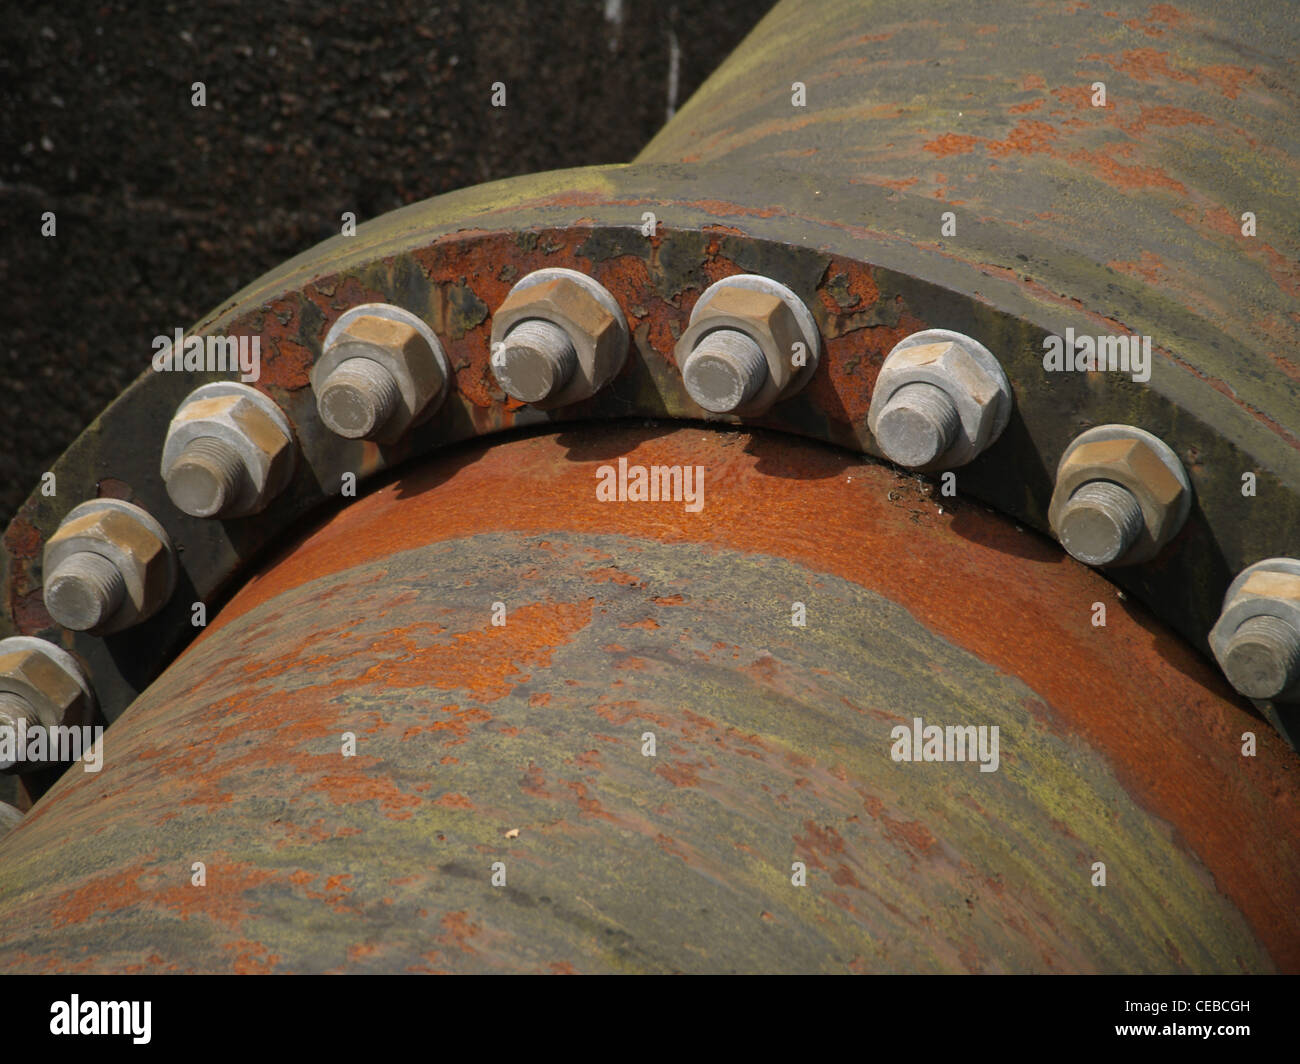 Nuts and bolts holding industrial sized water pipes together Stock Photo